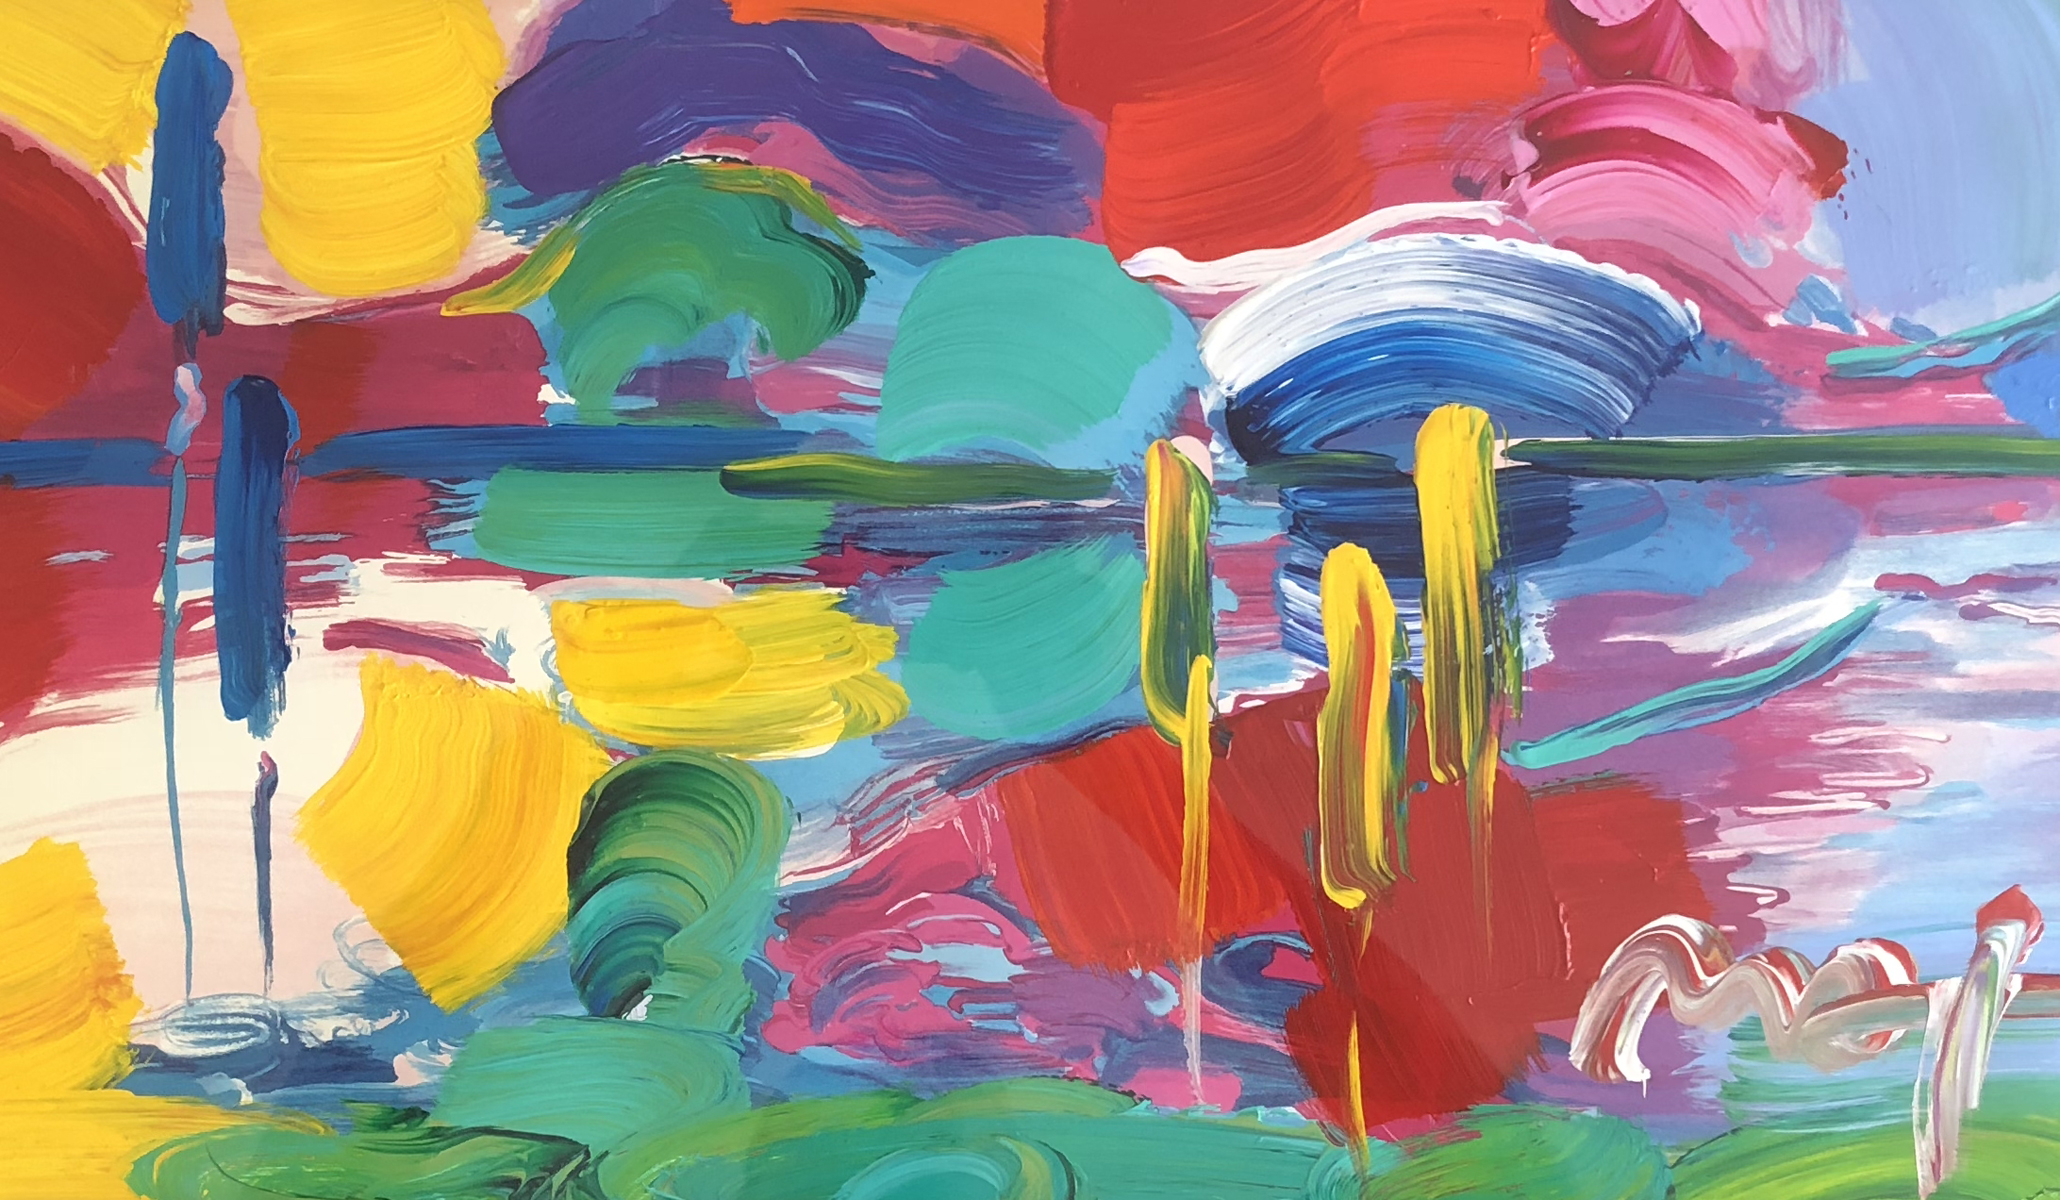 Four Seasons Series: Summer - Autumn Unique 2007 27x45 by Peter Max